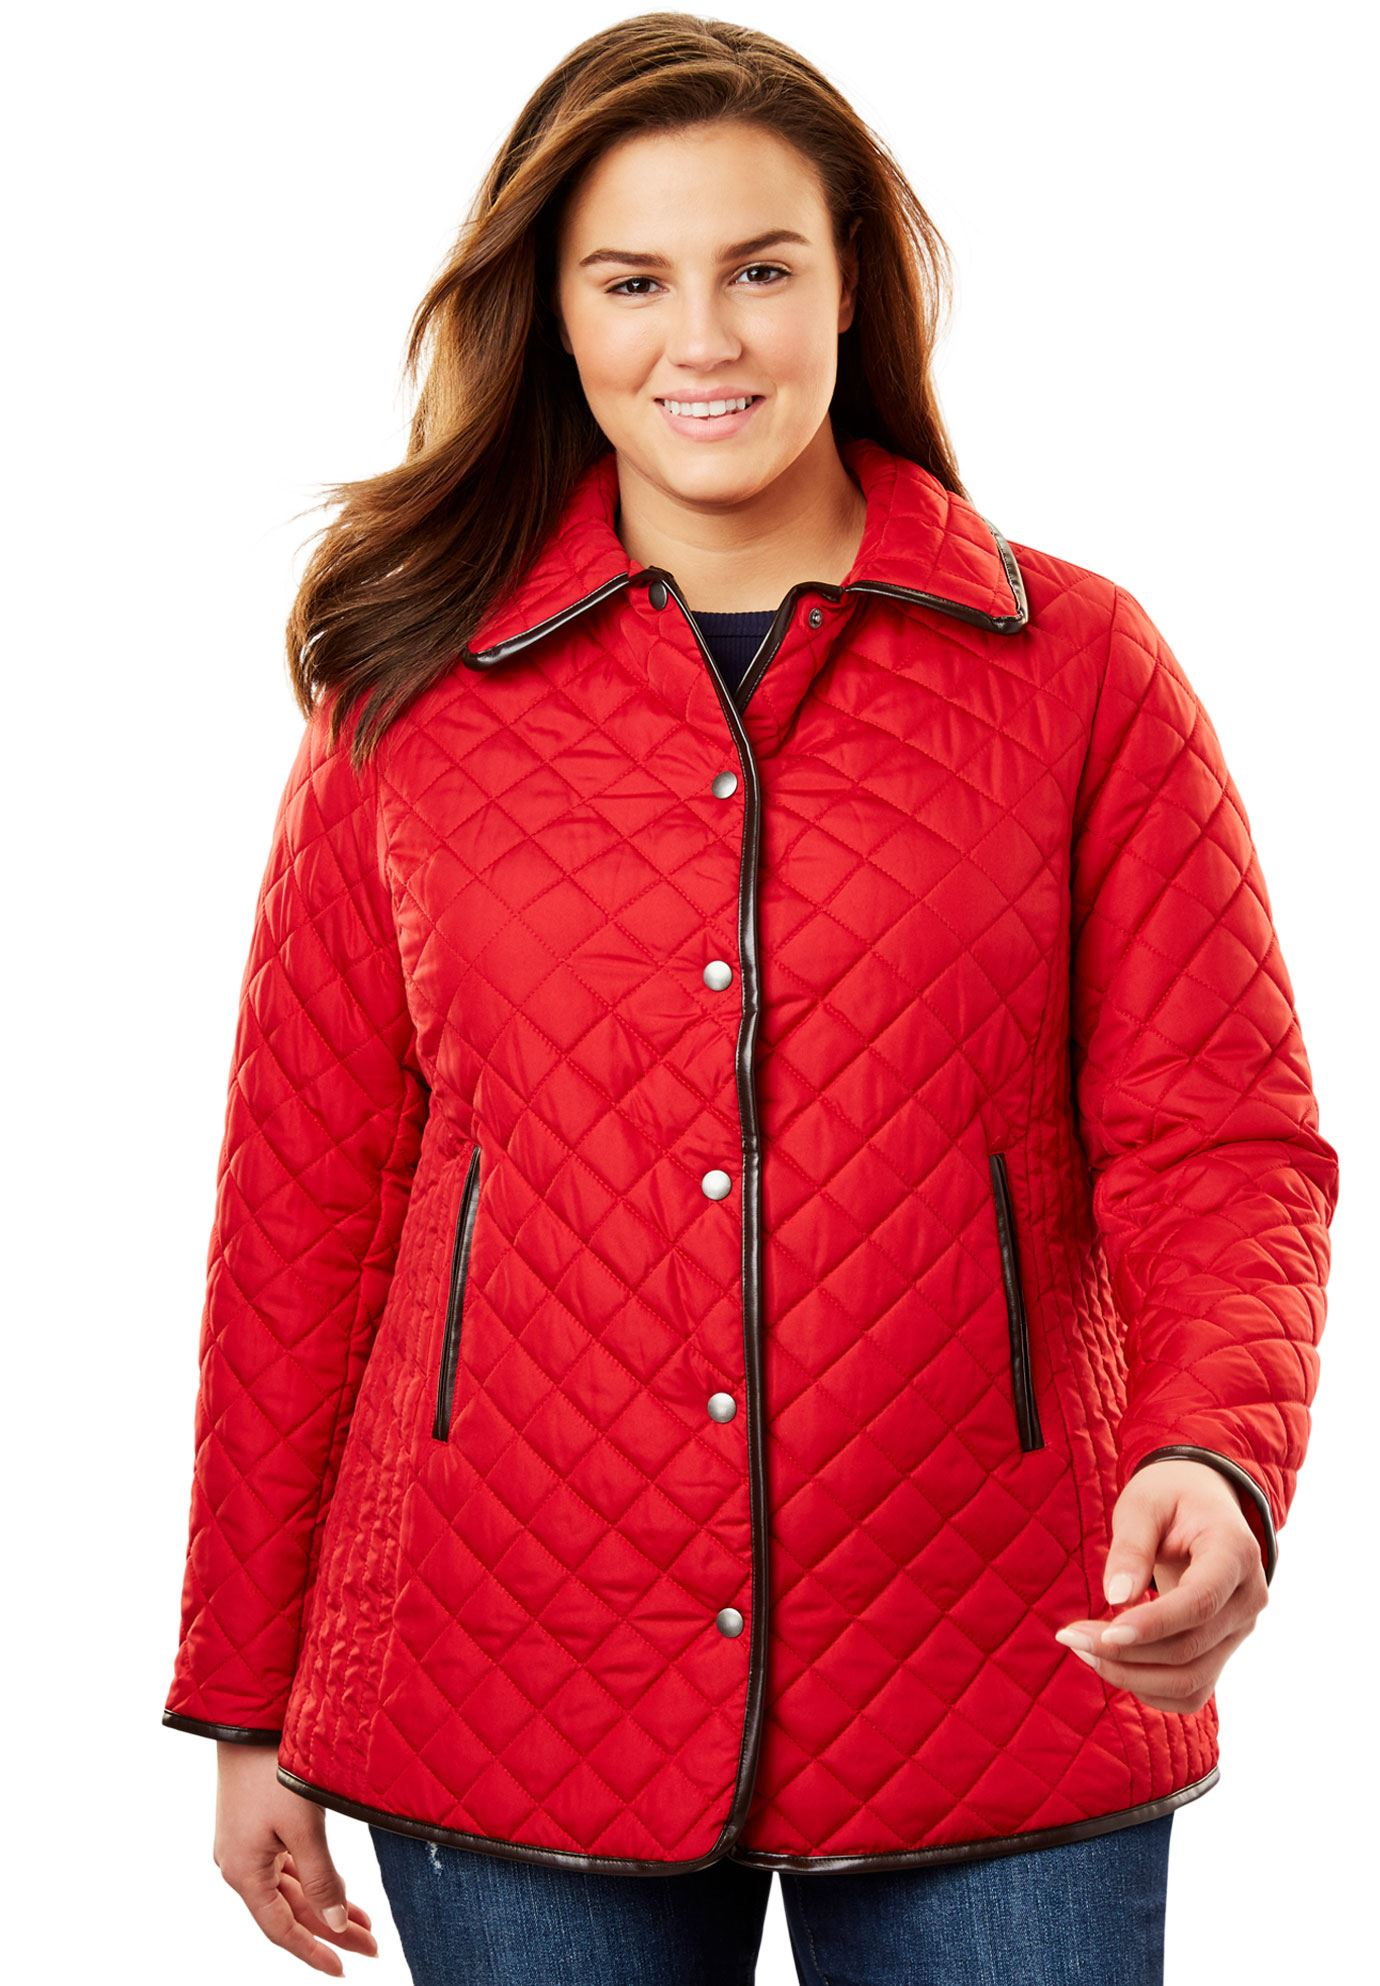 Quilted for women at burberry coats plus walmart size malaysia clearance